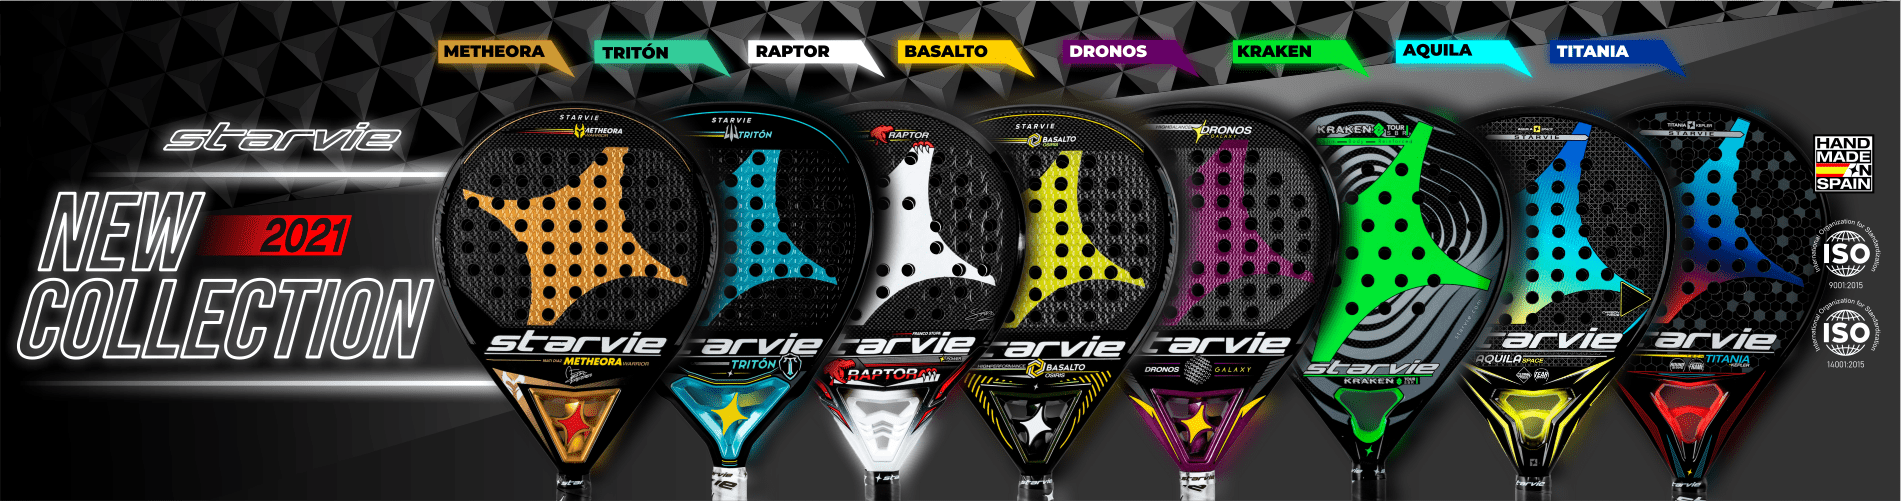 New Collection Padel Rackets 2021 - StarVie